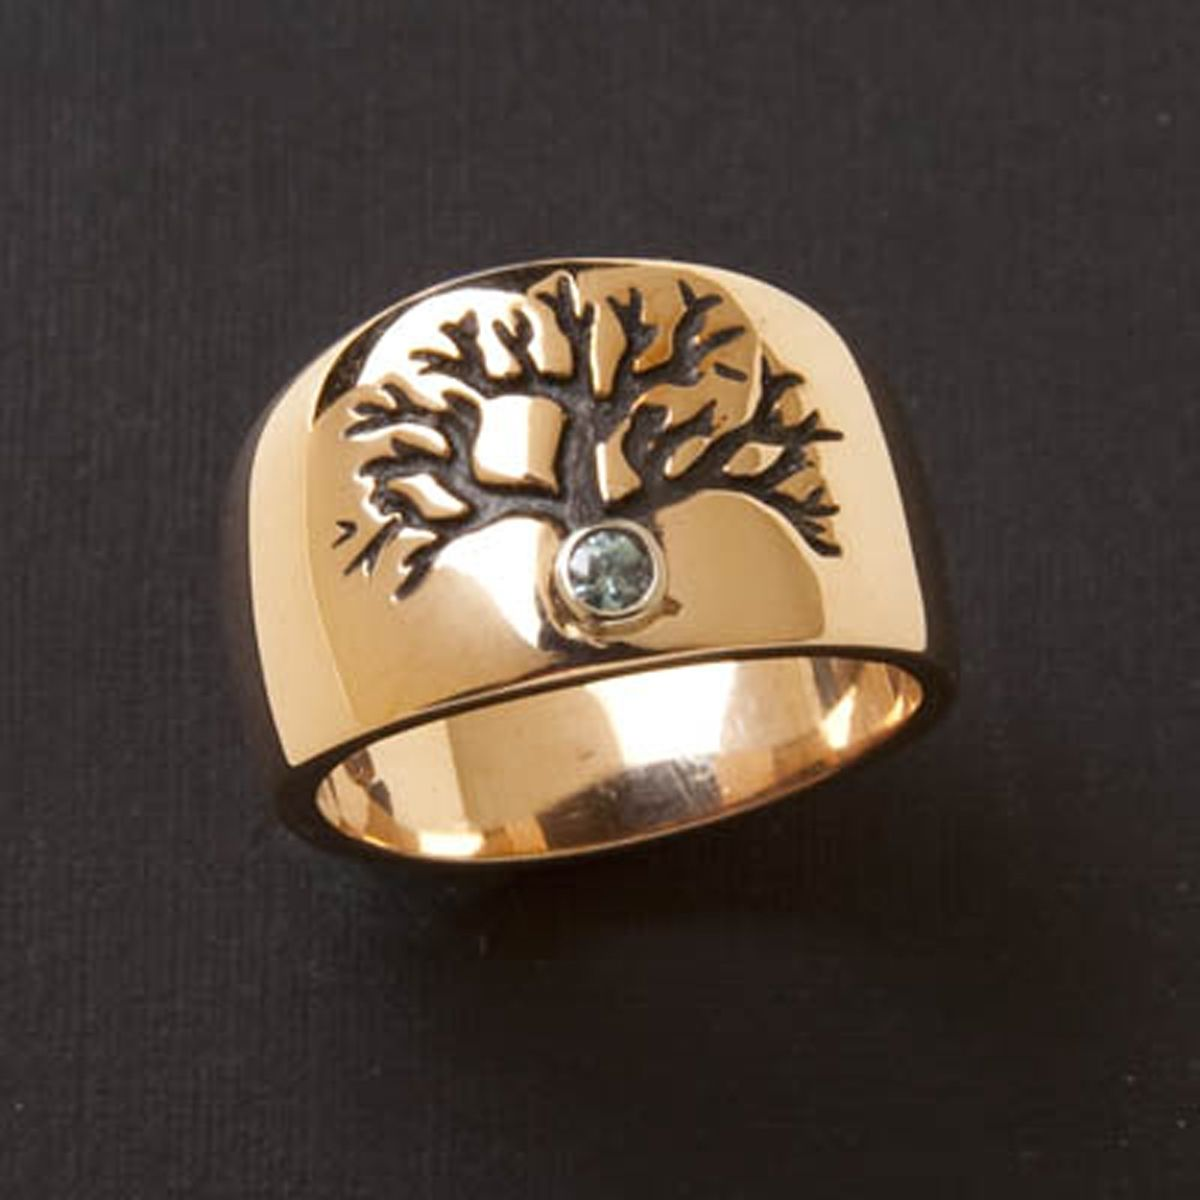 Hand Made Tree Of Life Wedding Ring  by Black Mountain Jewelry Co  CustomMadecom